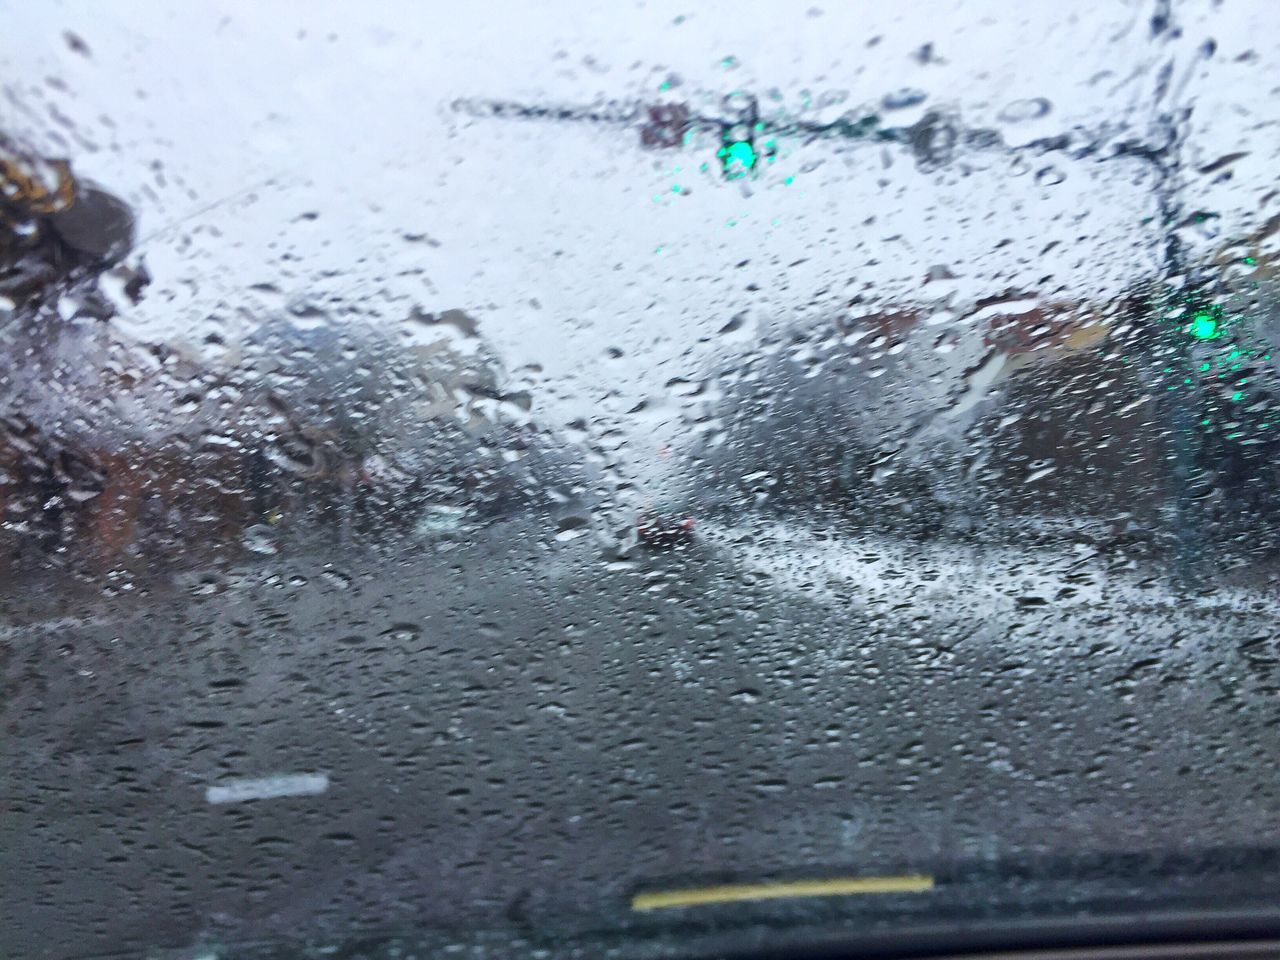 wet, drop, car, glass - material, rain, vehicle interior, window, transportation, mode of transport, land vehicle, water, rainy season, weather, raindrop, car interior, backgrounds, windshield, full frame, no people, close-up, indoors, day, illuminated, sky